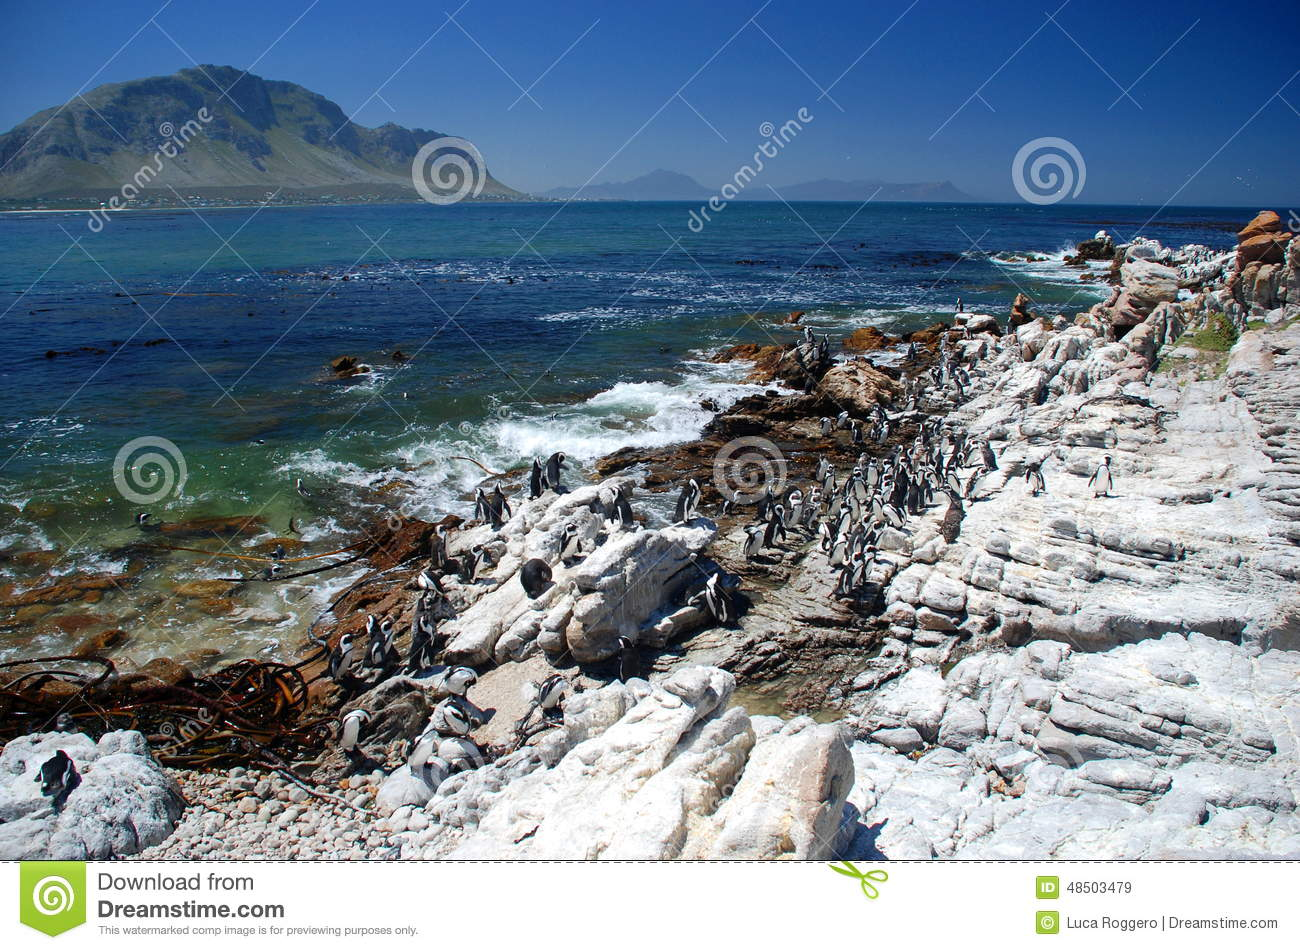 jackass penguin nature reserve betty s bay western cape south africa afrikaans bettysbaai small holiday town situated 48503479